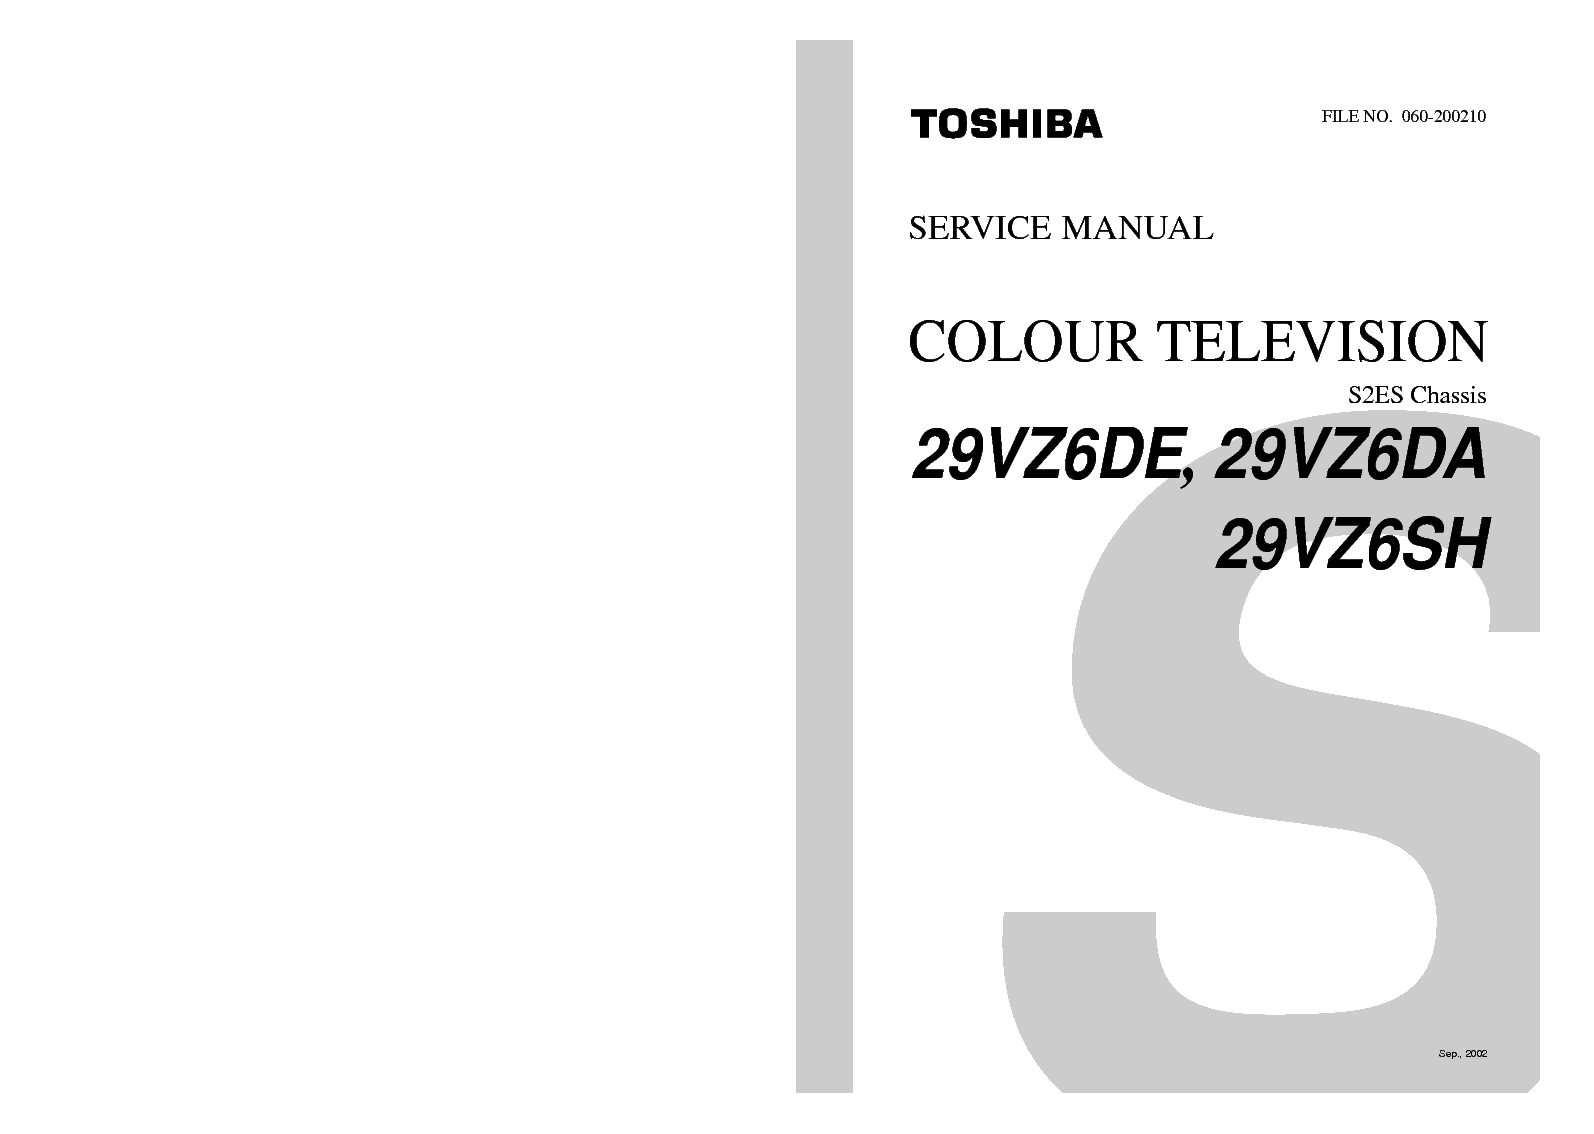 Toshiba 29vz6de 29vz6da 29vz6sh Chassis S2es Service Manual Download Schematics Eeprom Repair